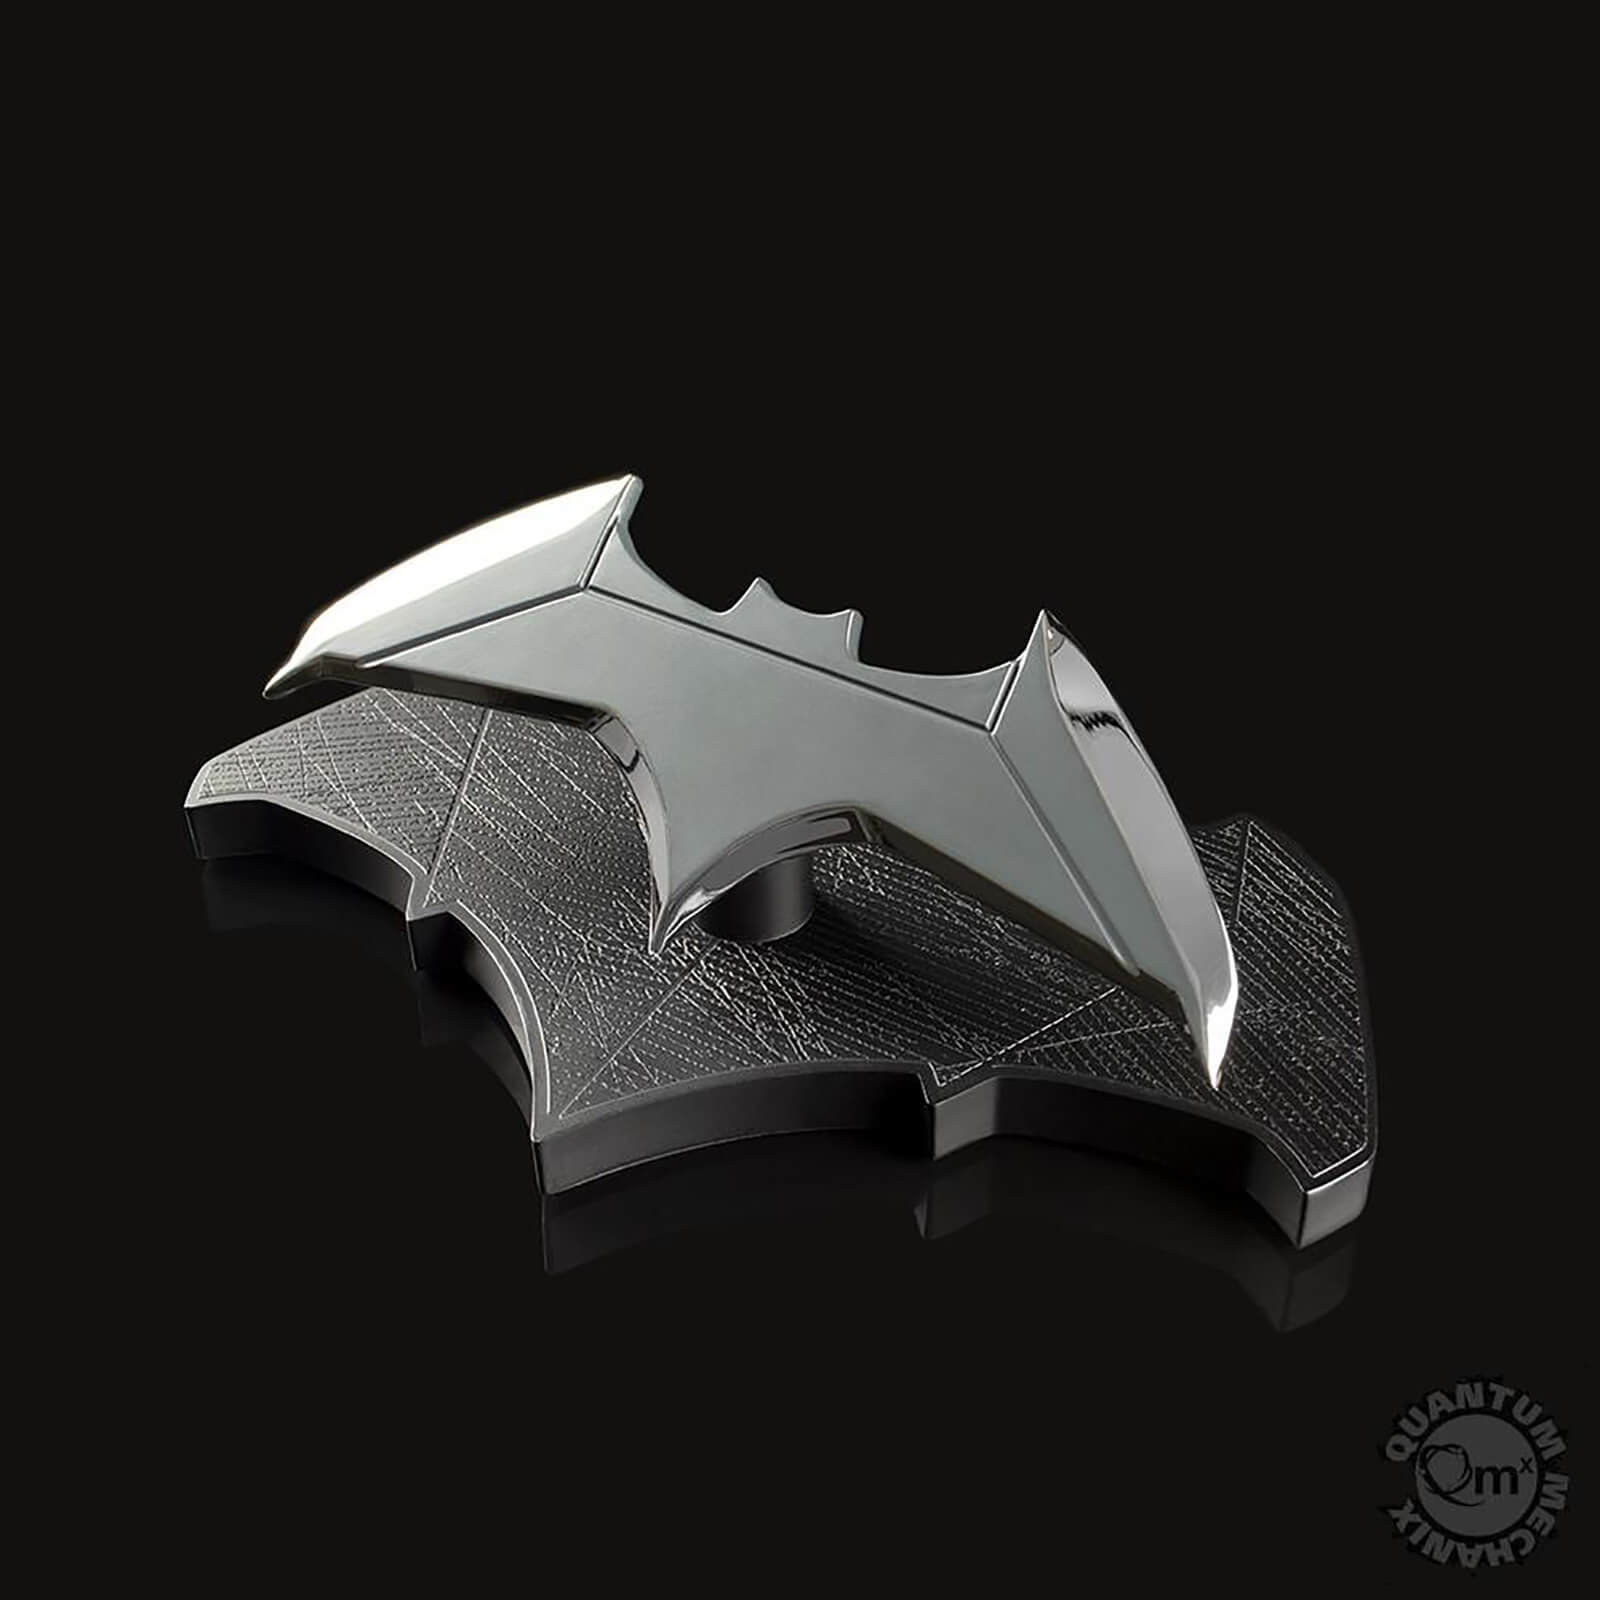 Replica ???? Quantum Mechanix Dc Comics Batman Batarang 1 1 Scale Replica